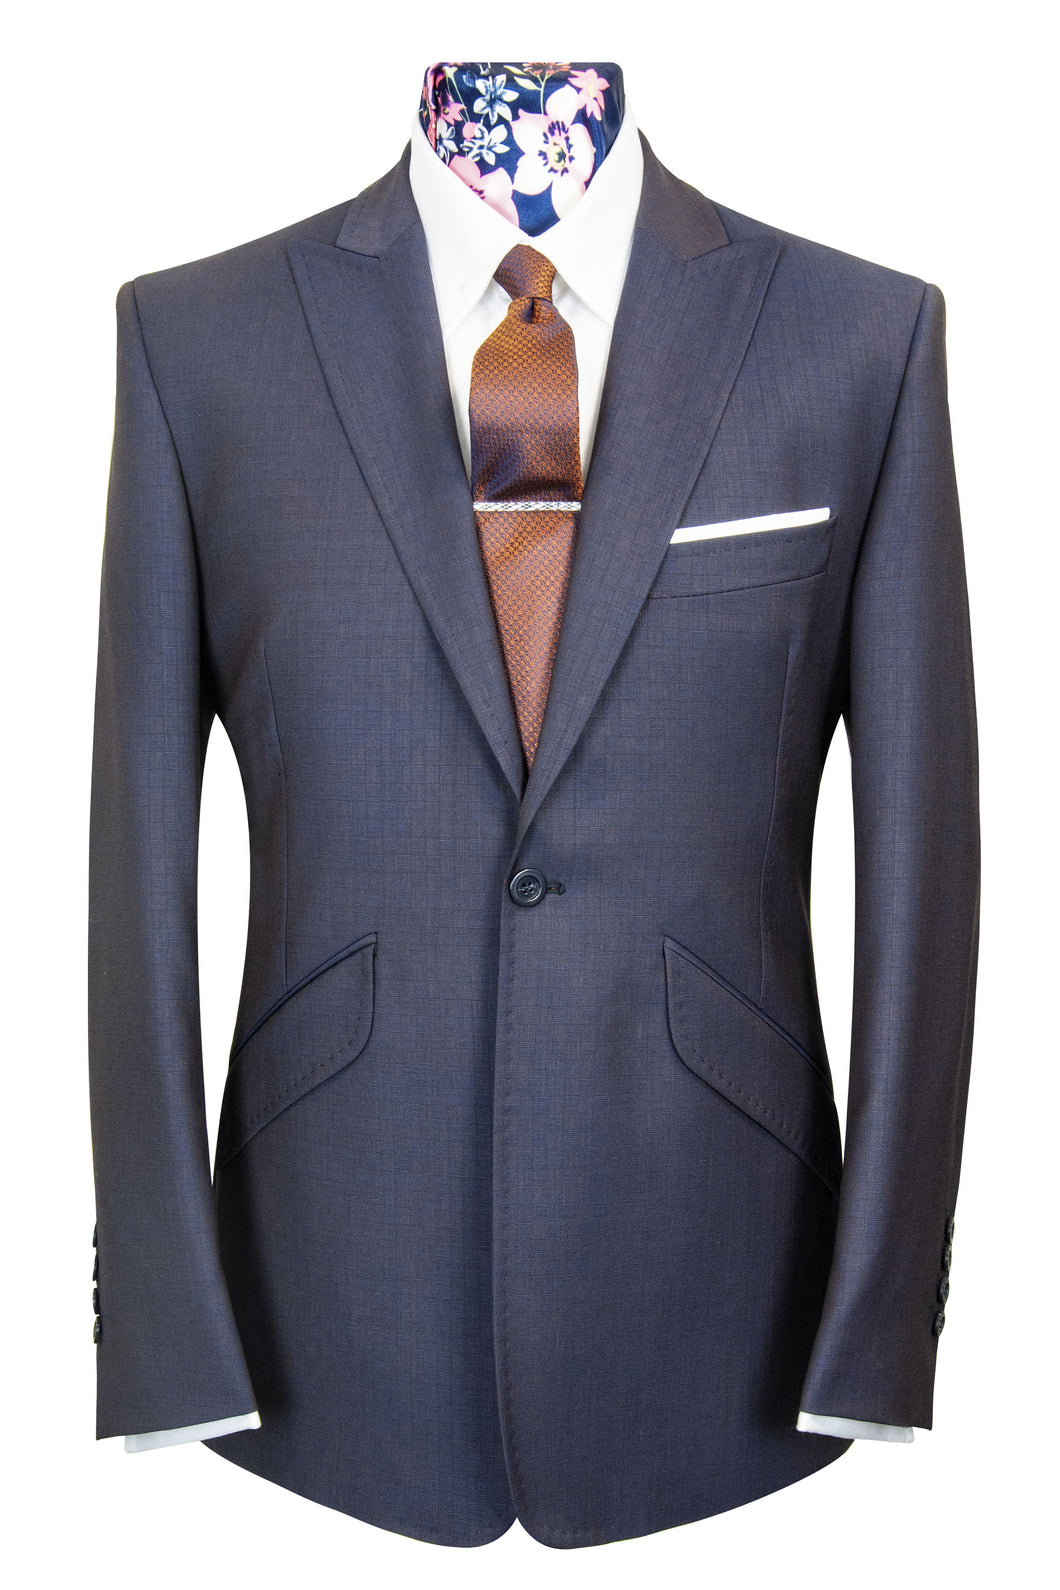 The Ashmore Navy Blue Box Check Suit